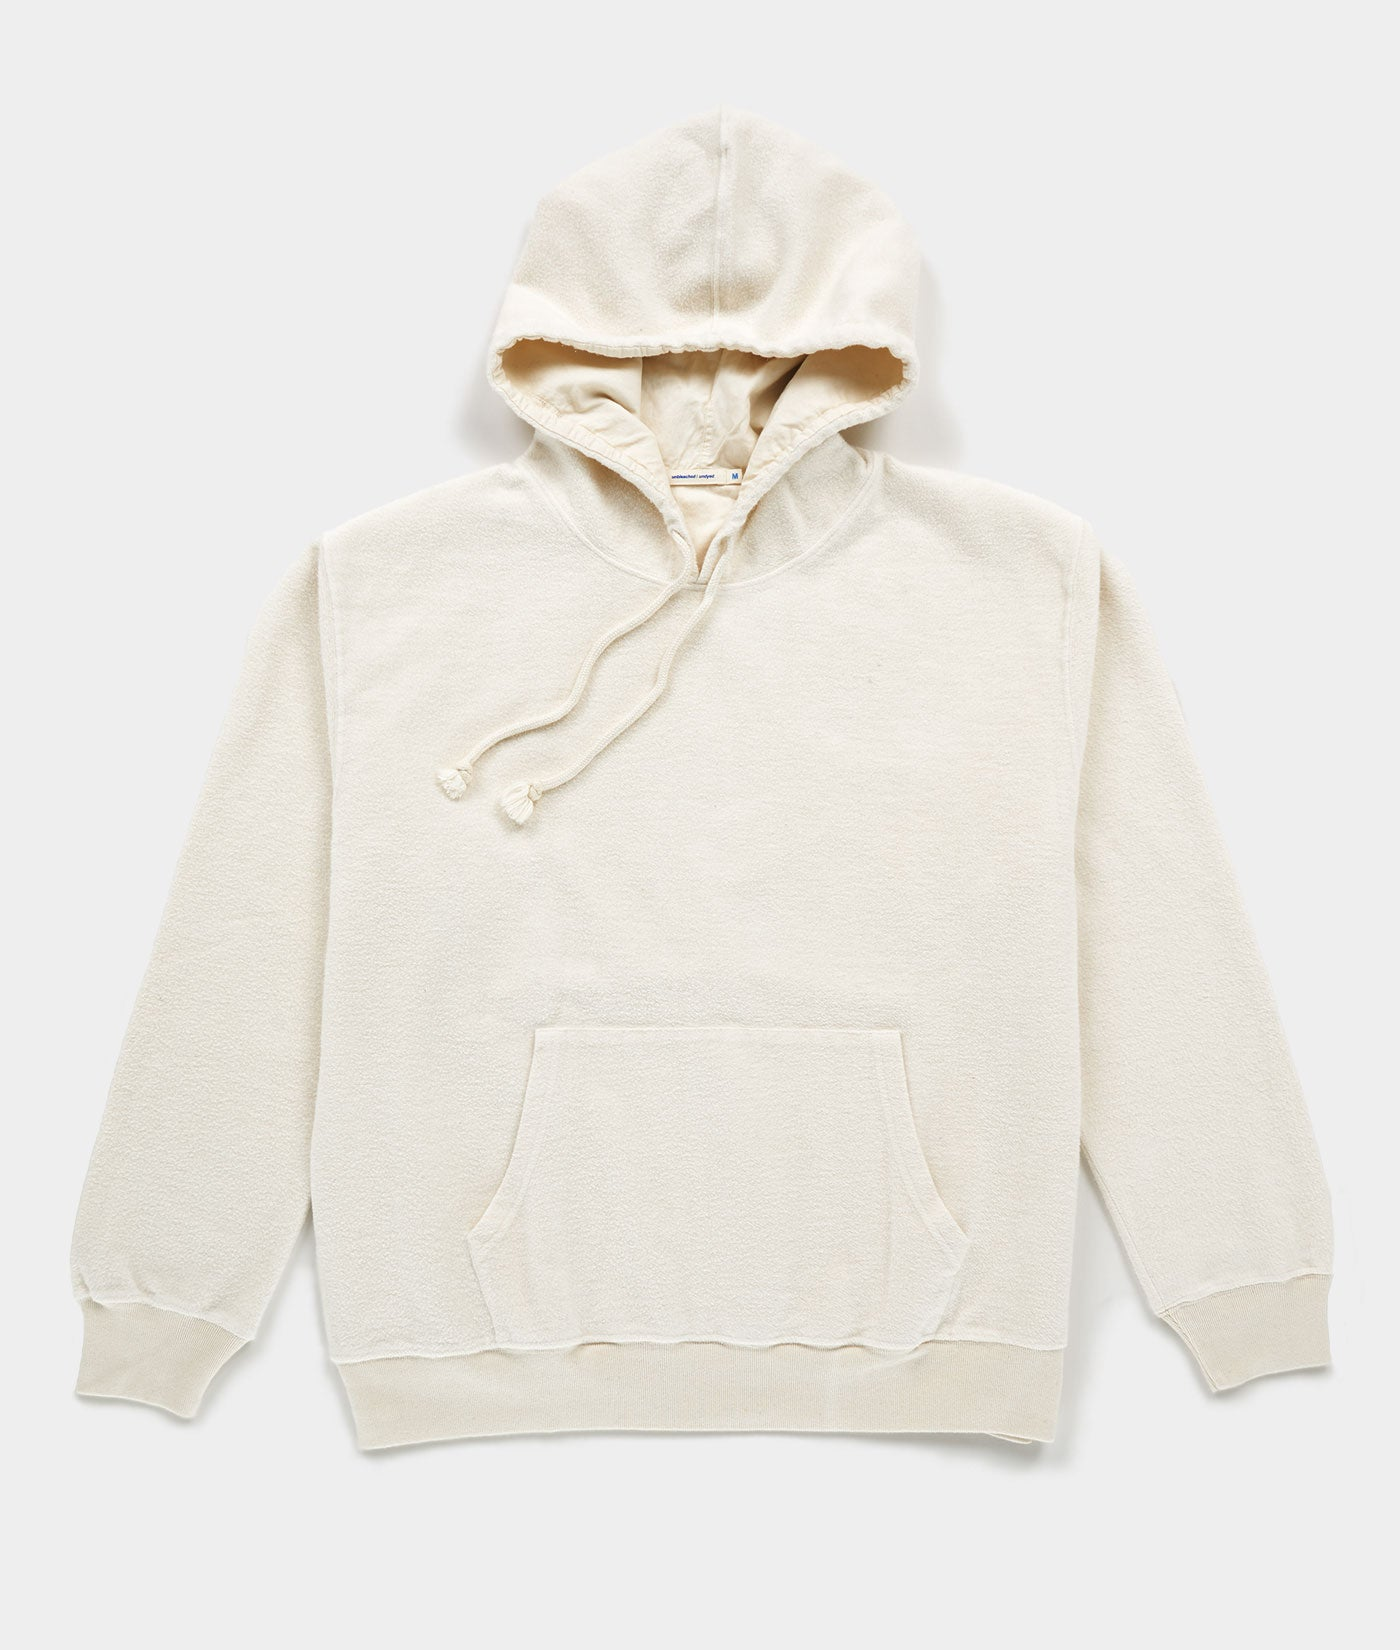 Industry of All Nations Organic Cotton Pullover Hoodie